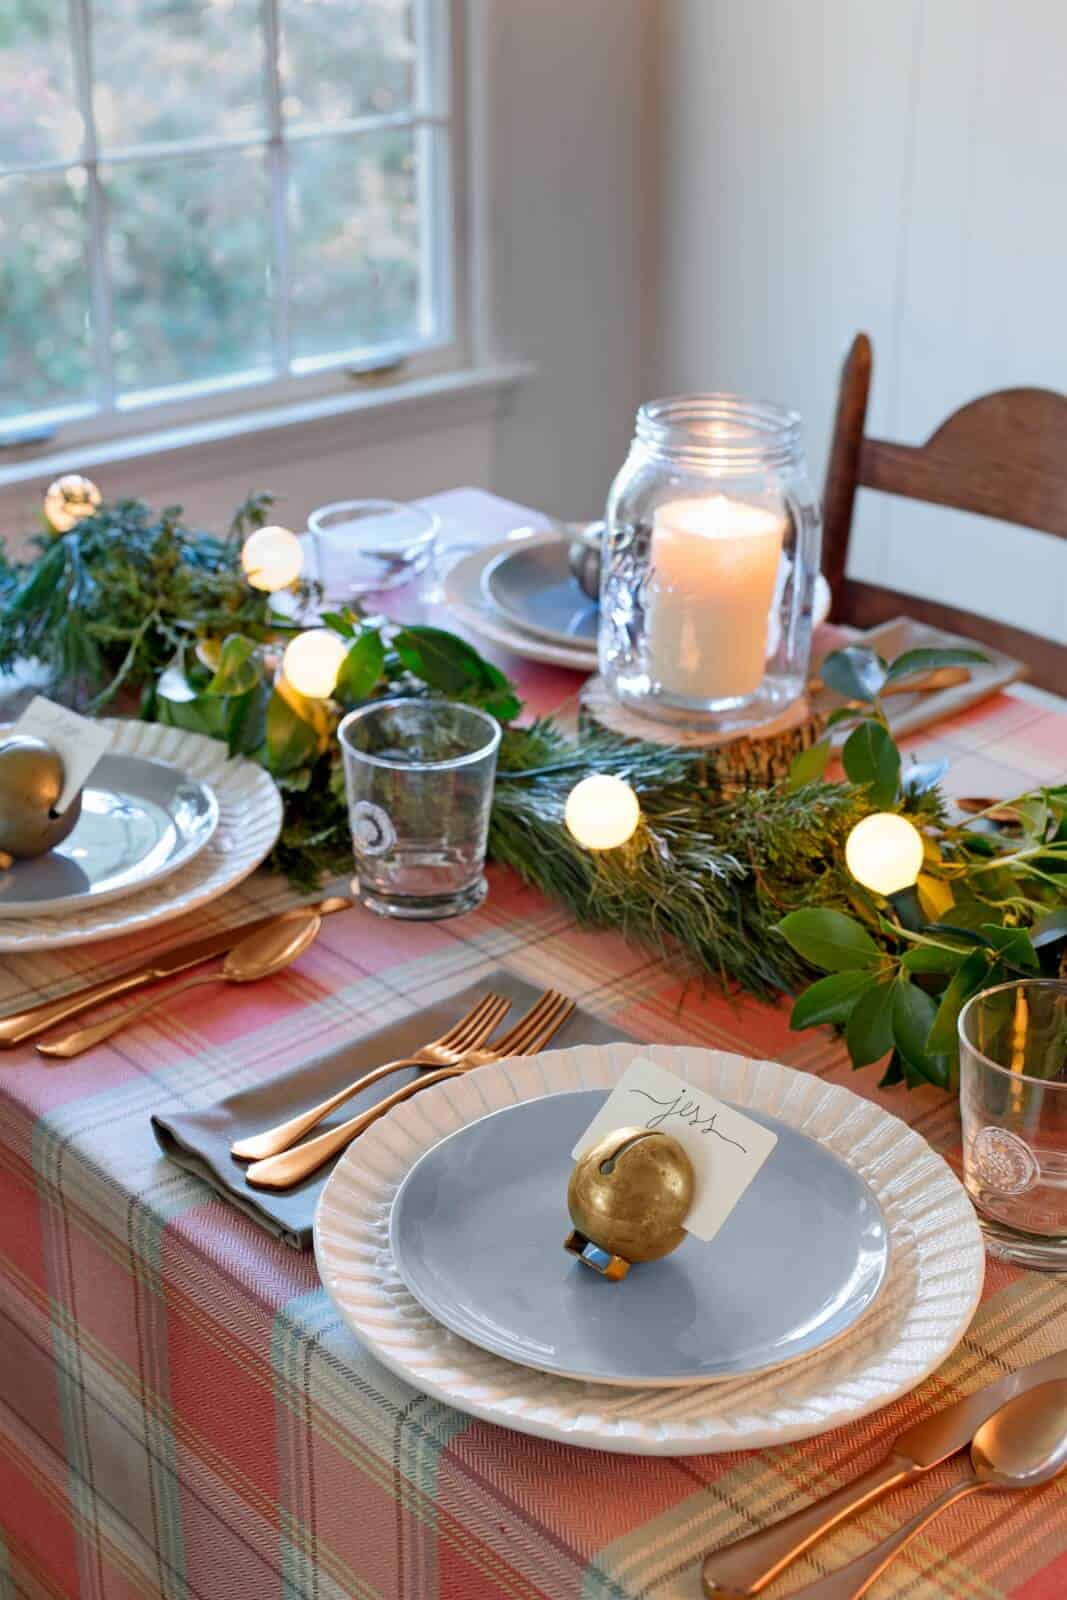 Plain and greenery seasonal table